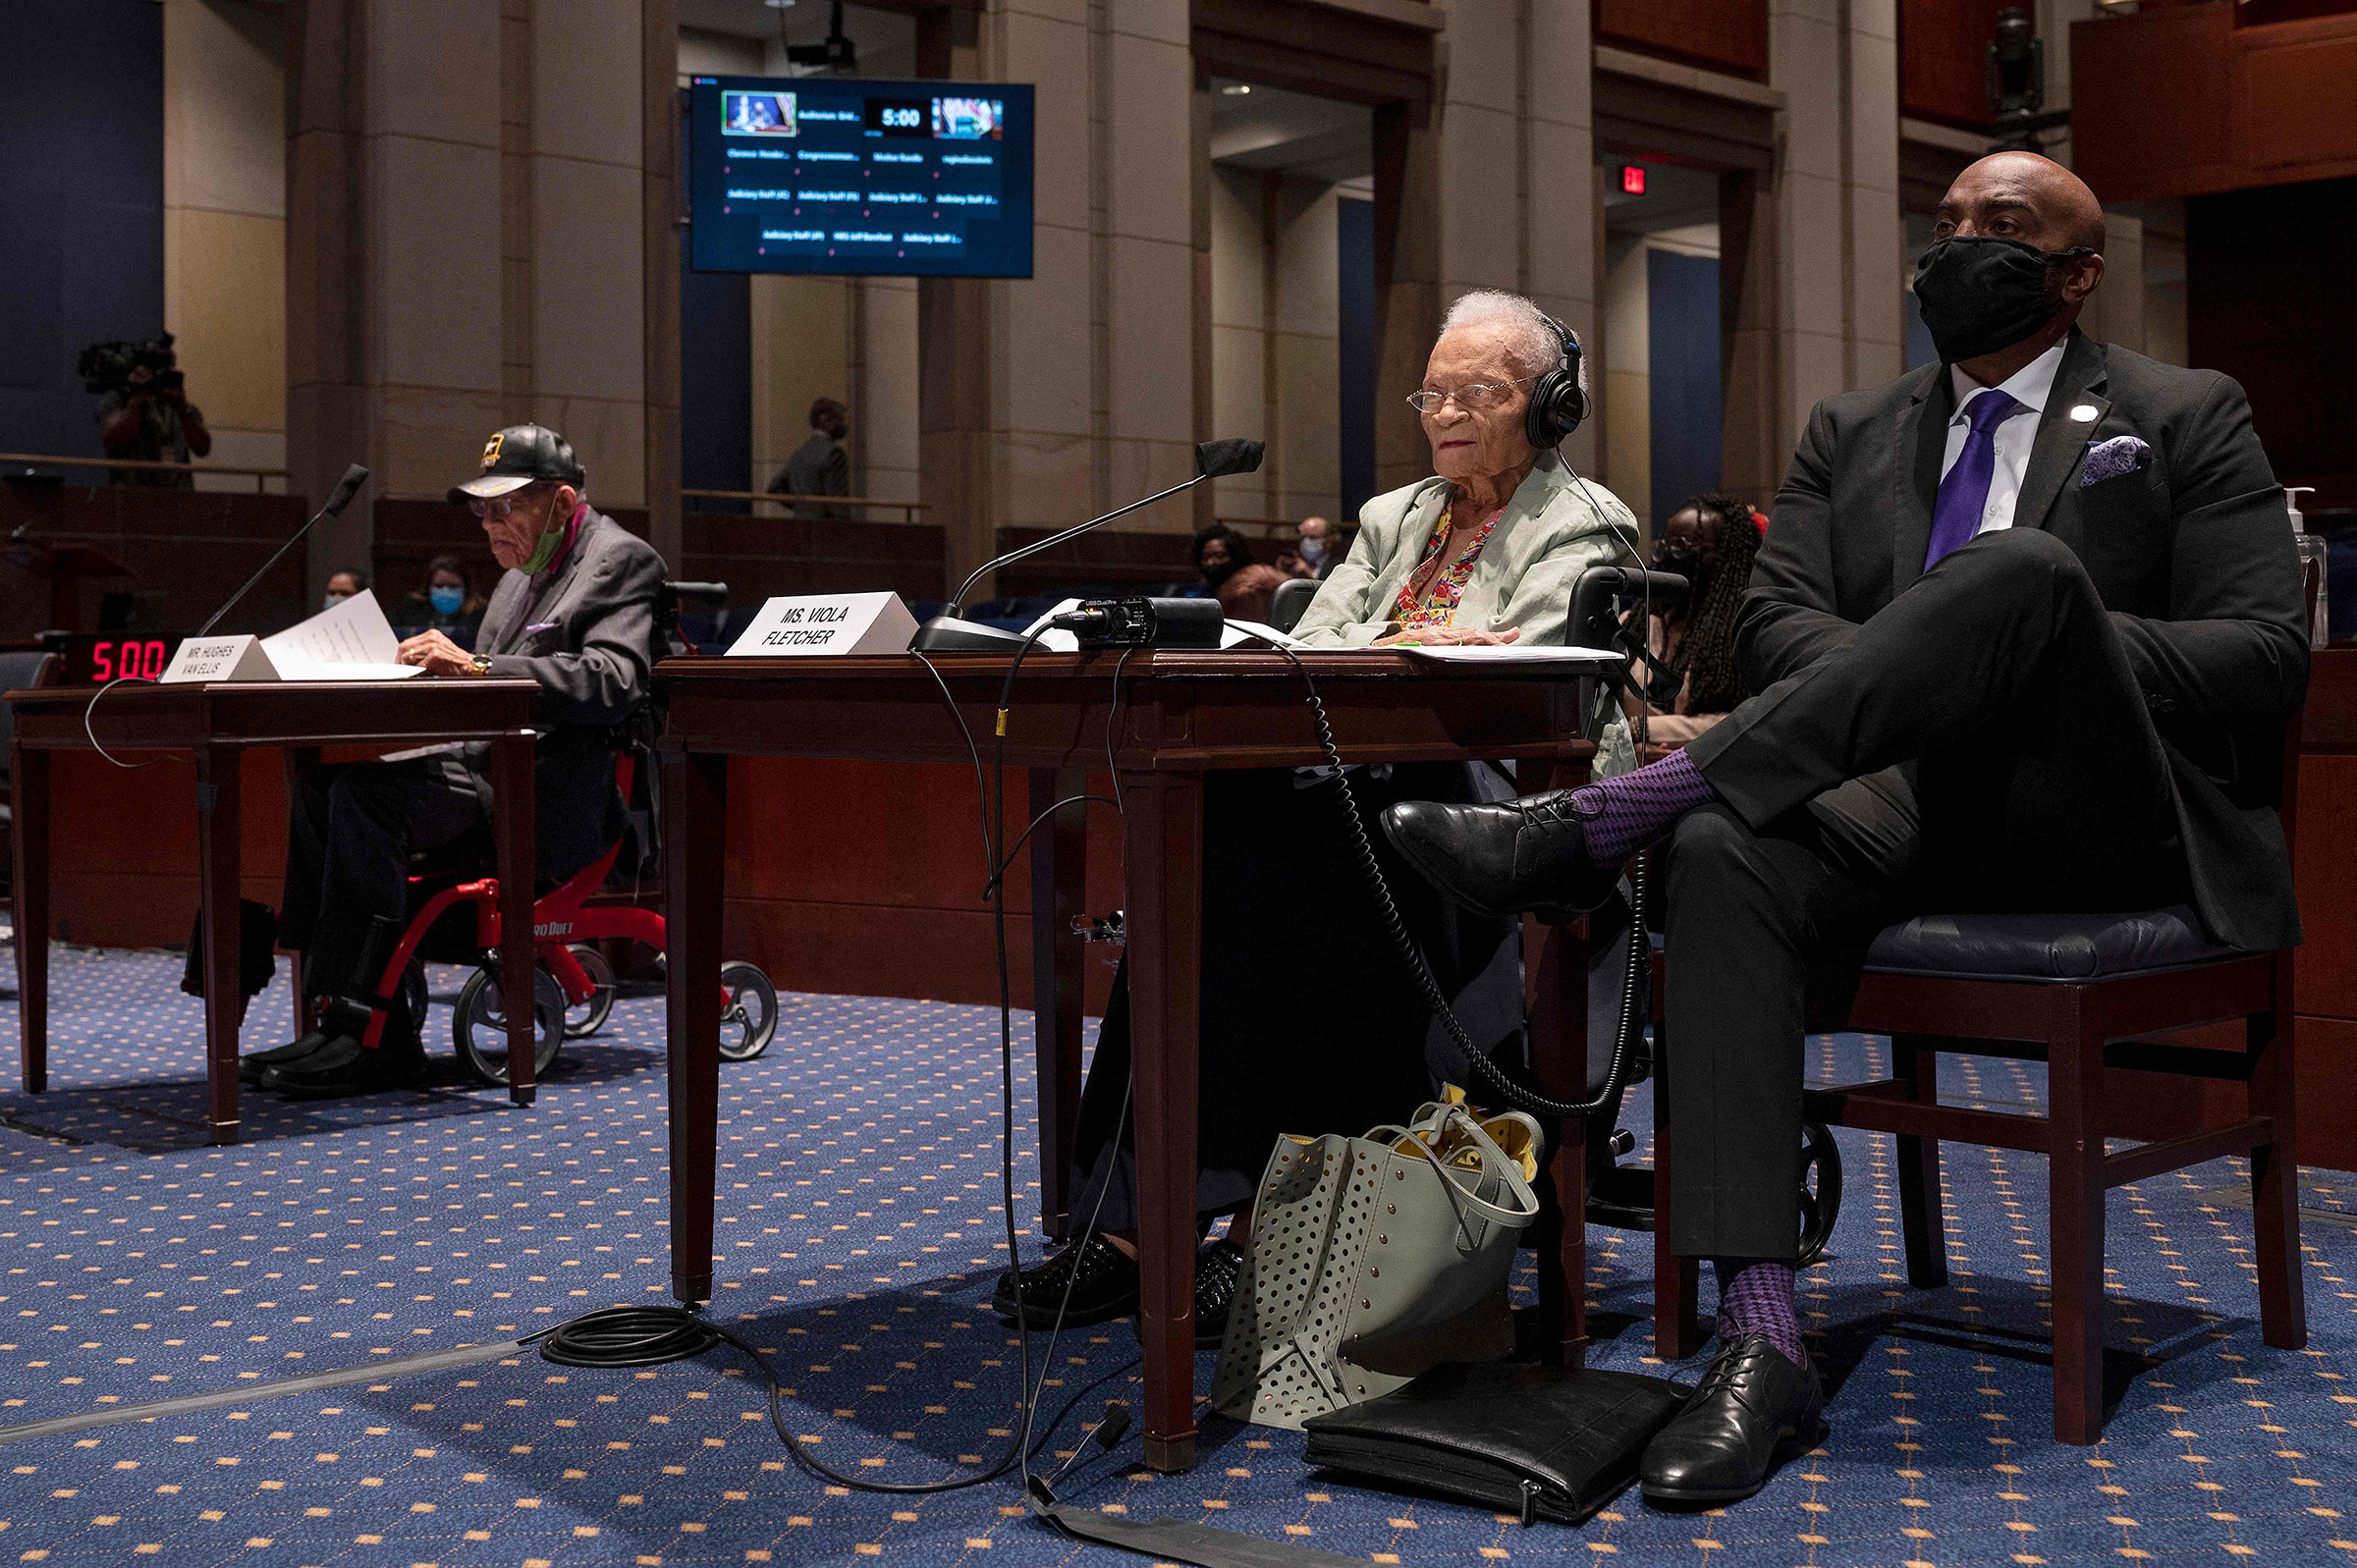 Hughes Van Ellis (left), a Tulsa Race Massacre survivor, and Viola Fletcher, the oldest living survivor, testify before the Civil Rights and Civil Liberties Subcommittee hearing on  Continuing Injustice: The Centennial of the Tulsa-Greenwood Race Massacre  on Capitol Hill in Washington, D.C., on May 19, 2021.